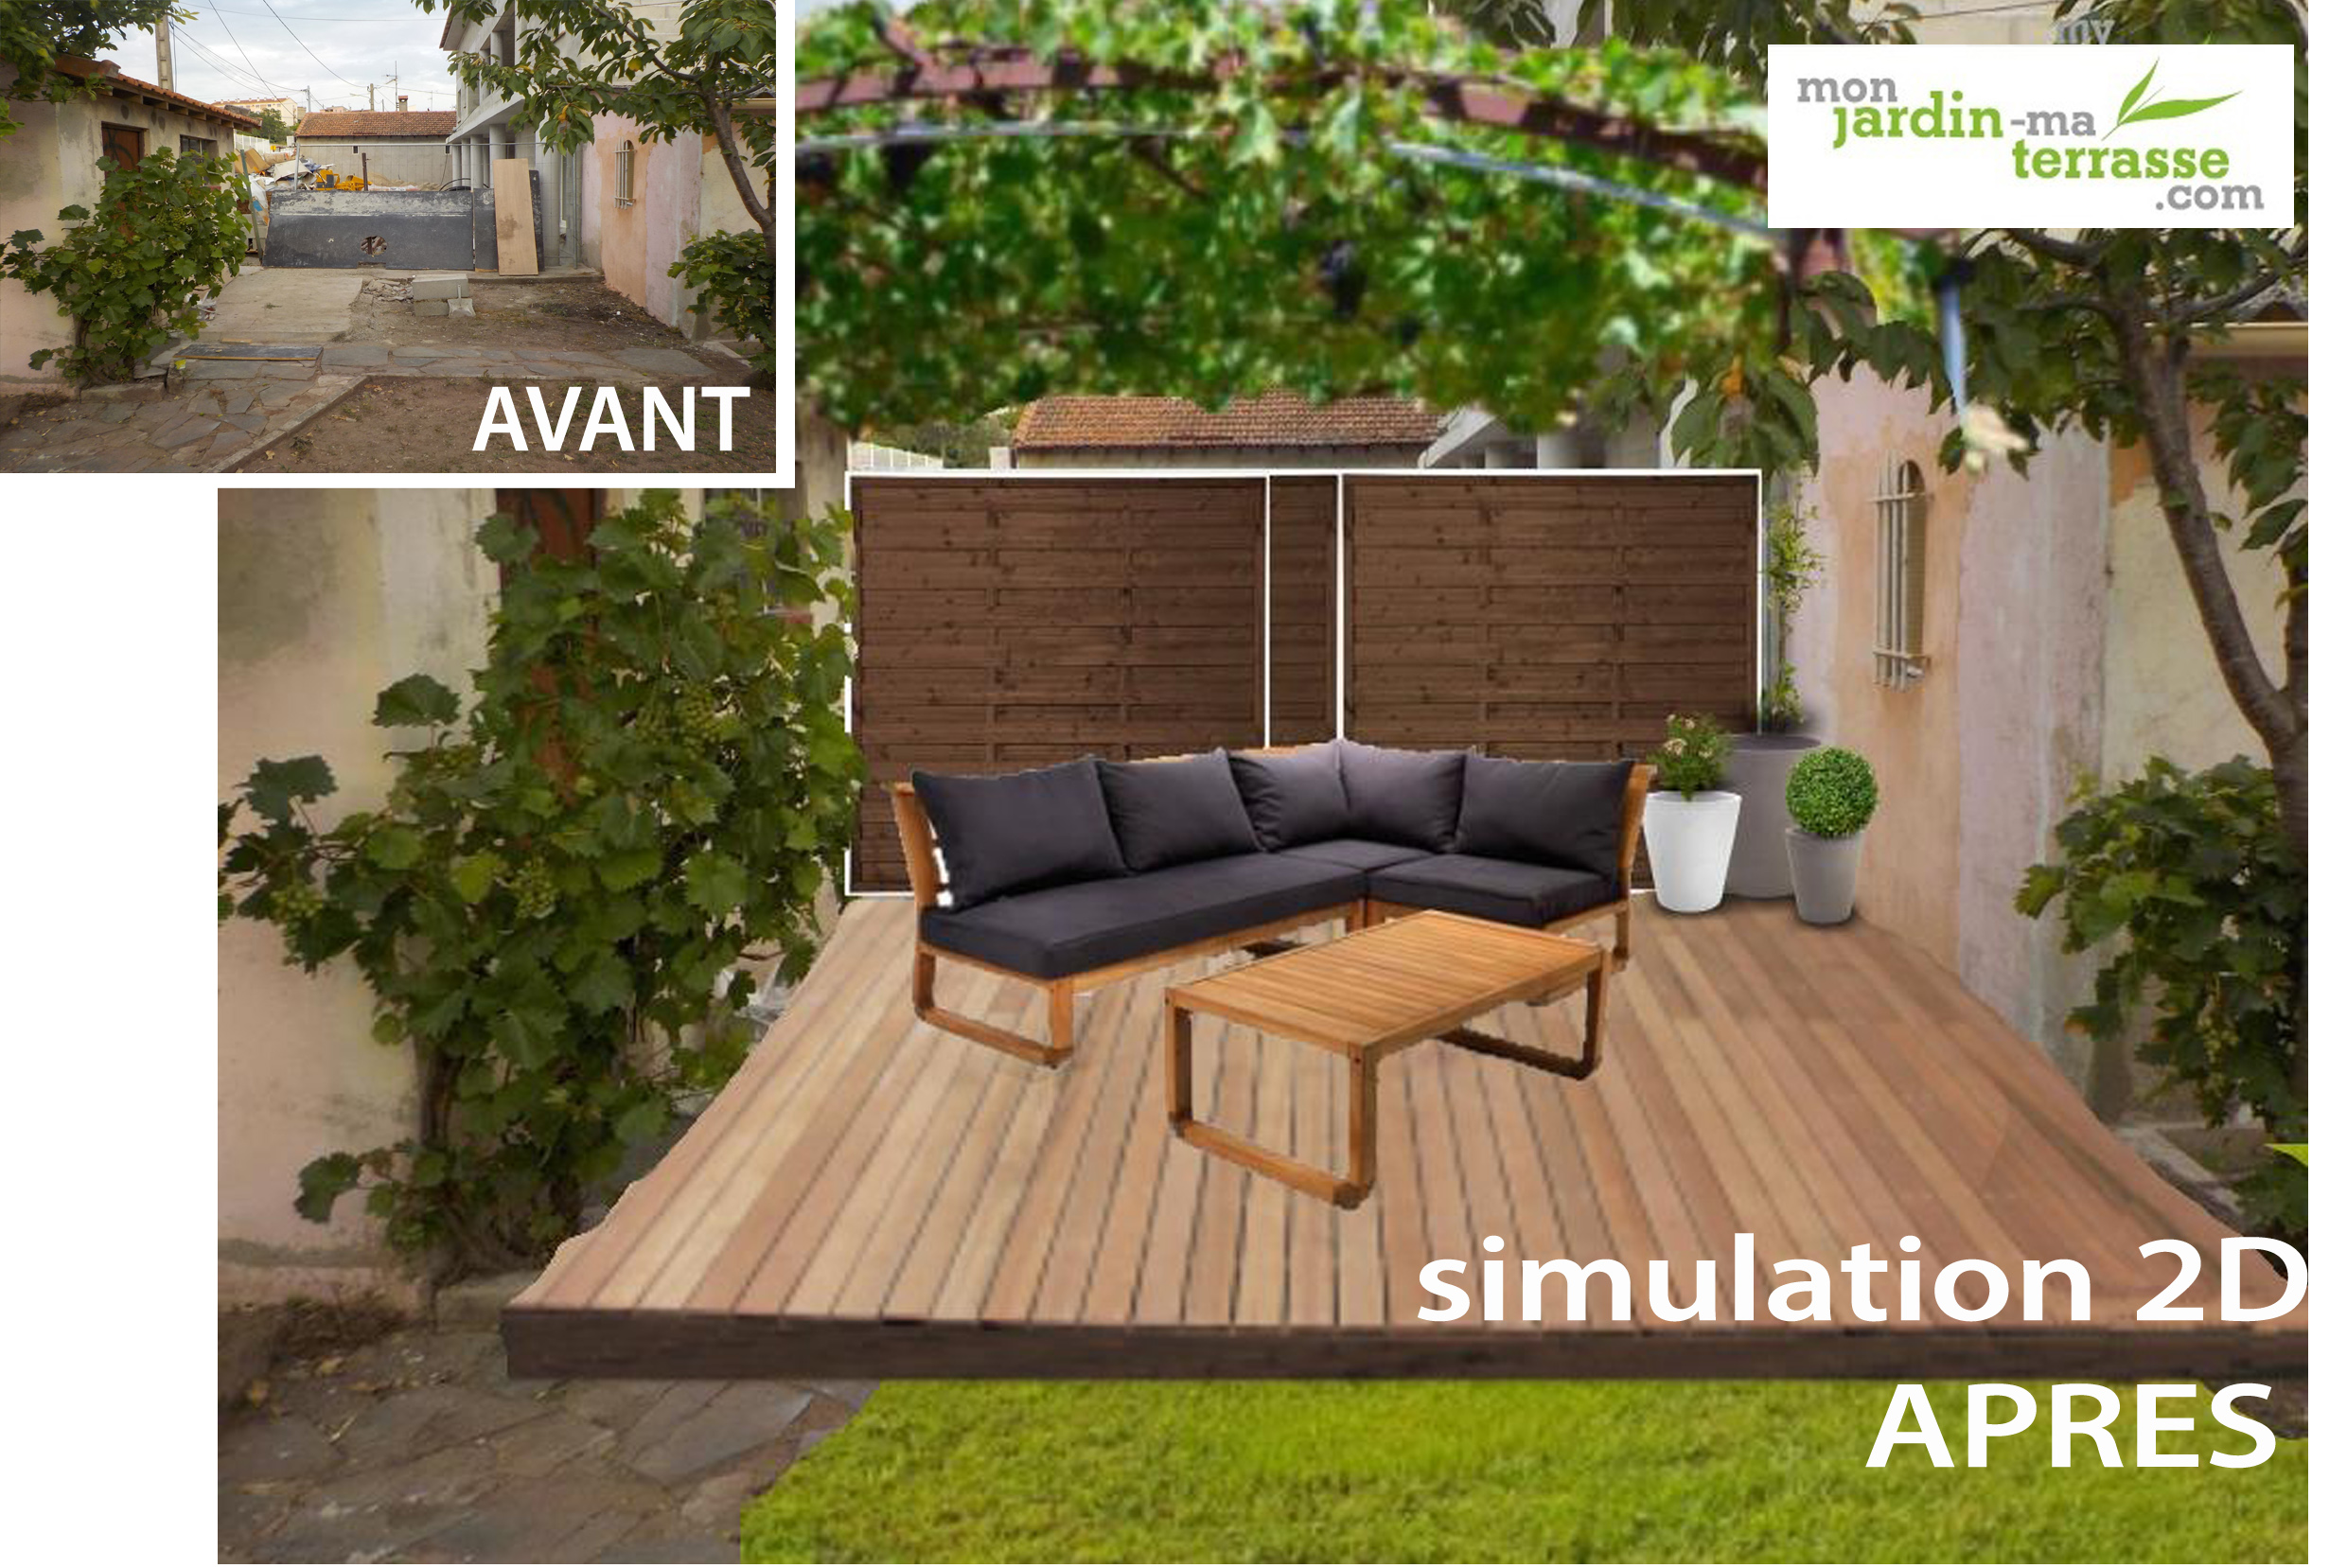 Am nager un coin repos dans son jardin monjardin for Amenagement petit coin jardin